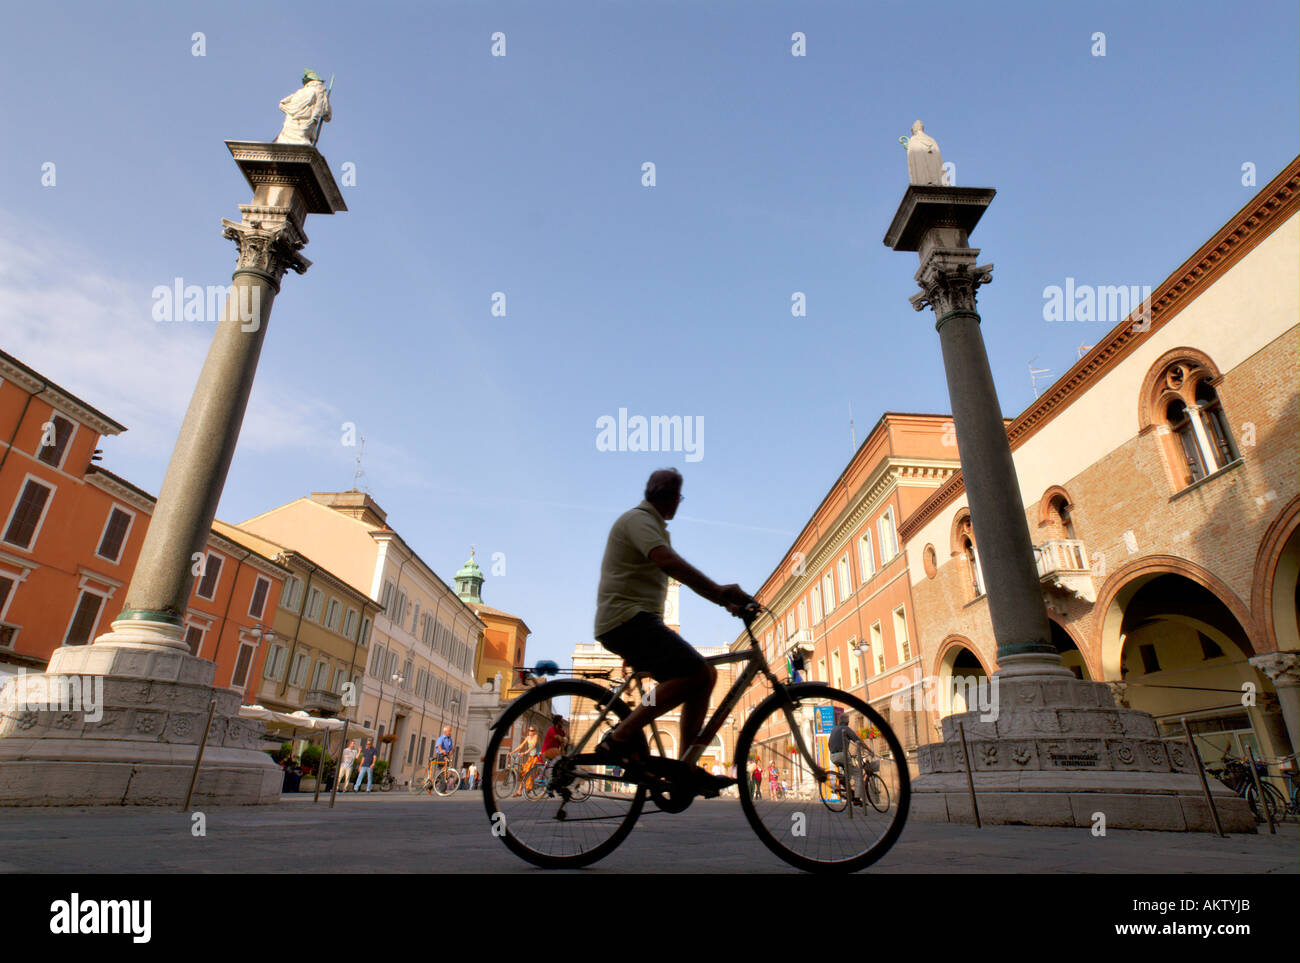 Ravenna Italy Cyclist rides through Piazza del Popolo framed by the Venetian columns - Stock Image